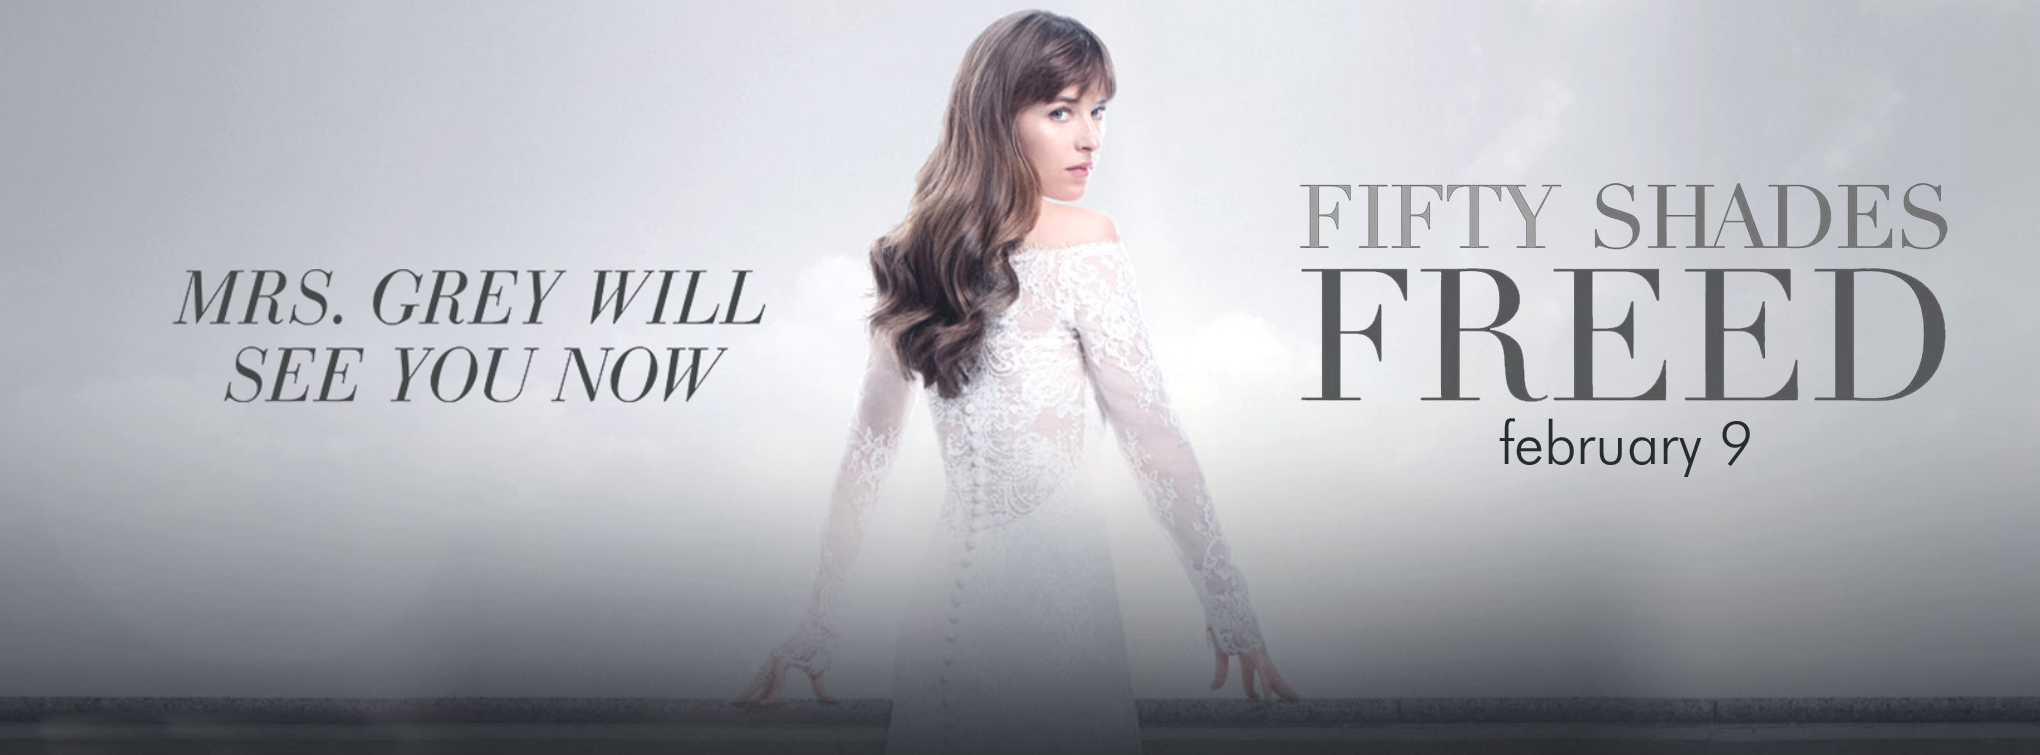 Slider image for Fifty Shades Freed